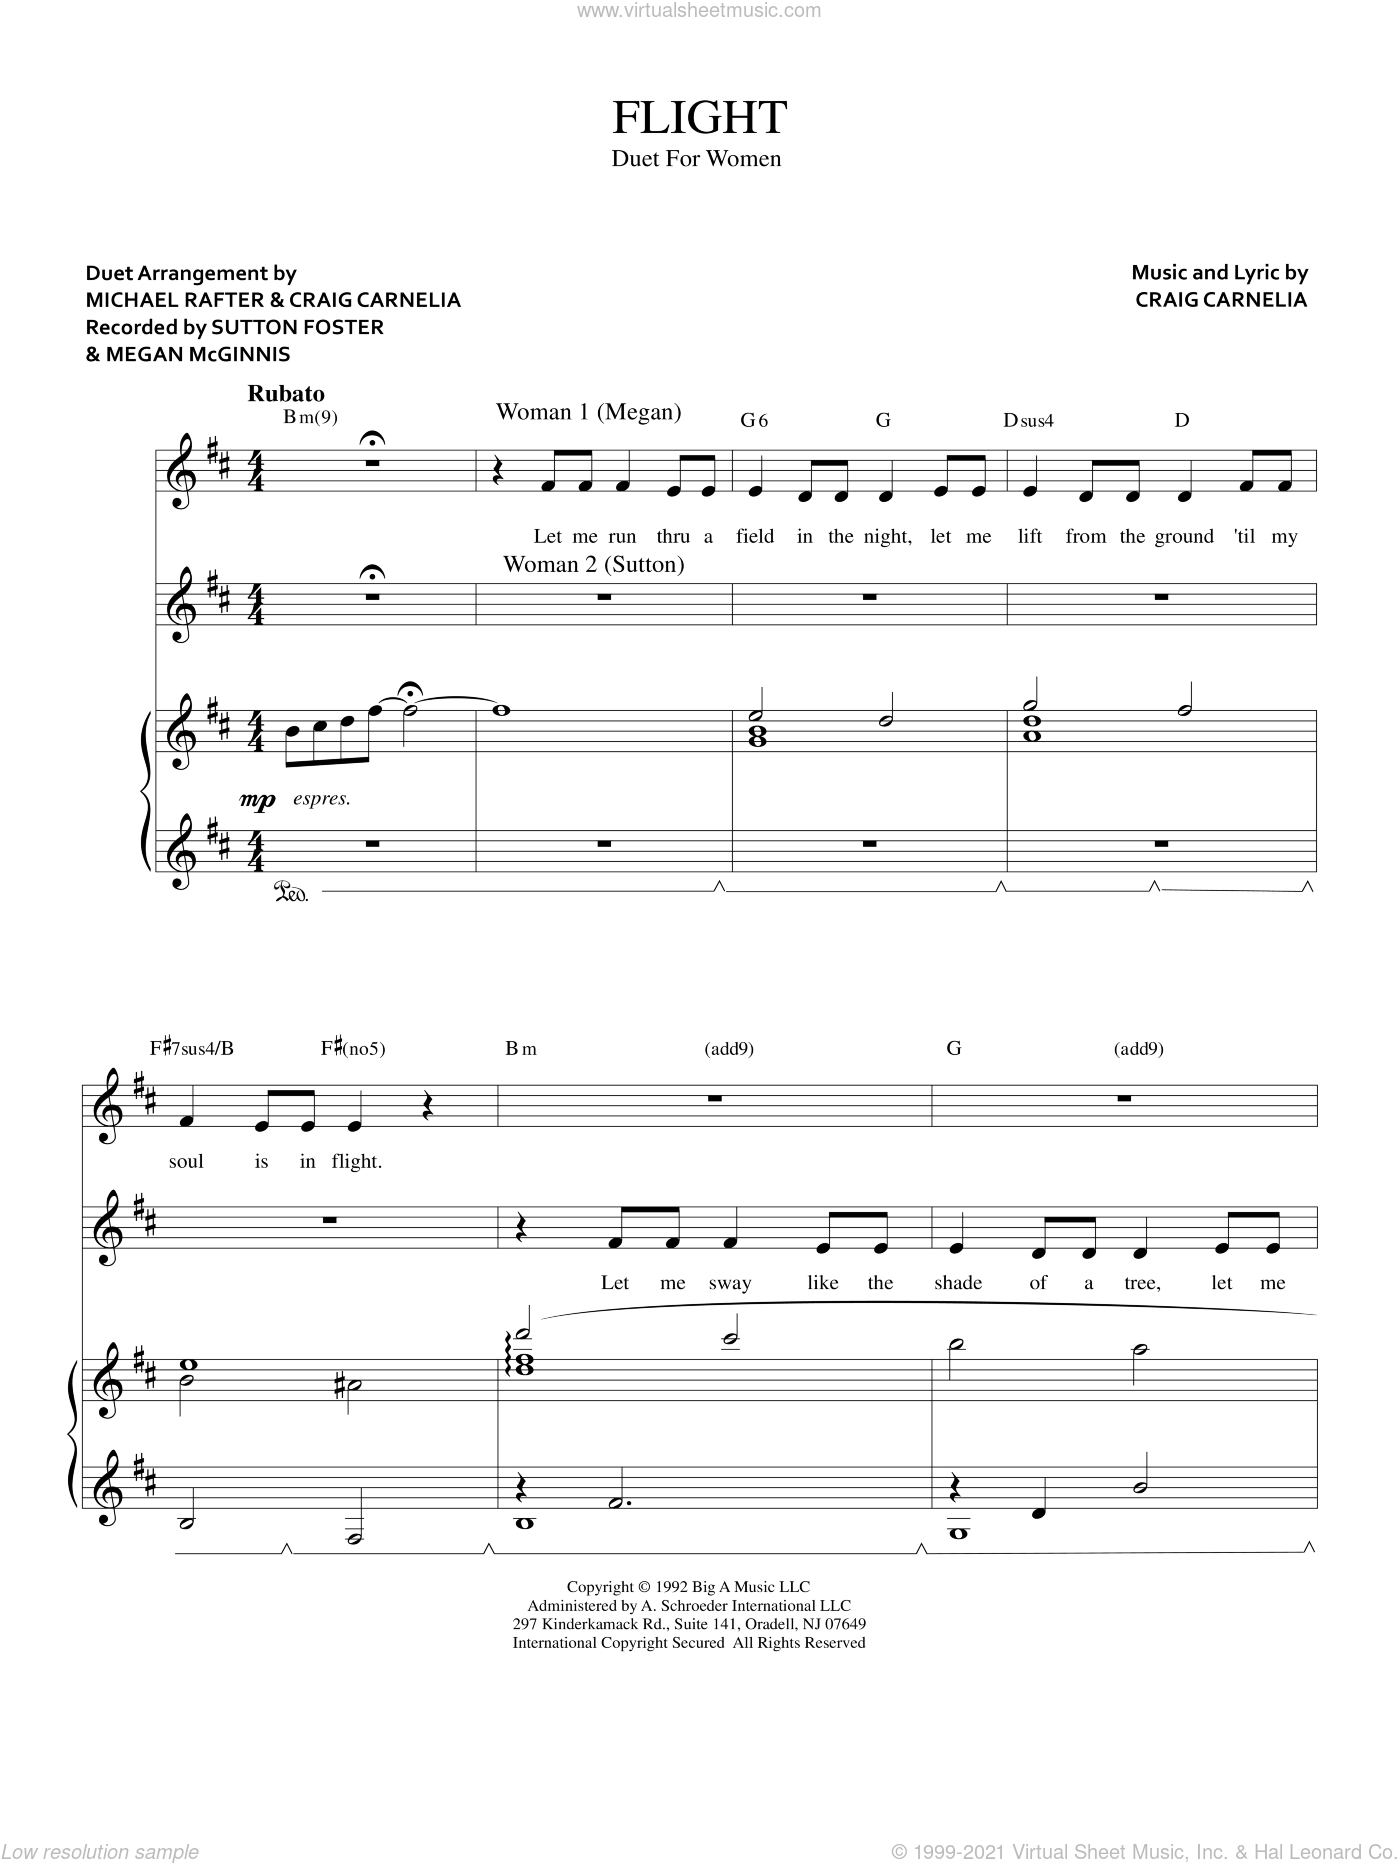 Flight sheet music for two voices and piano by Craig Carnelia